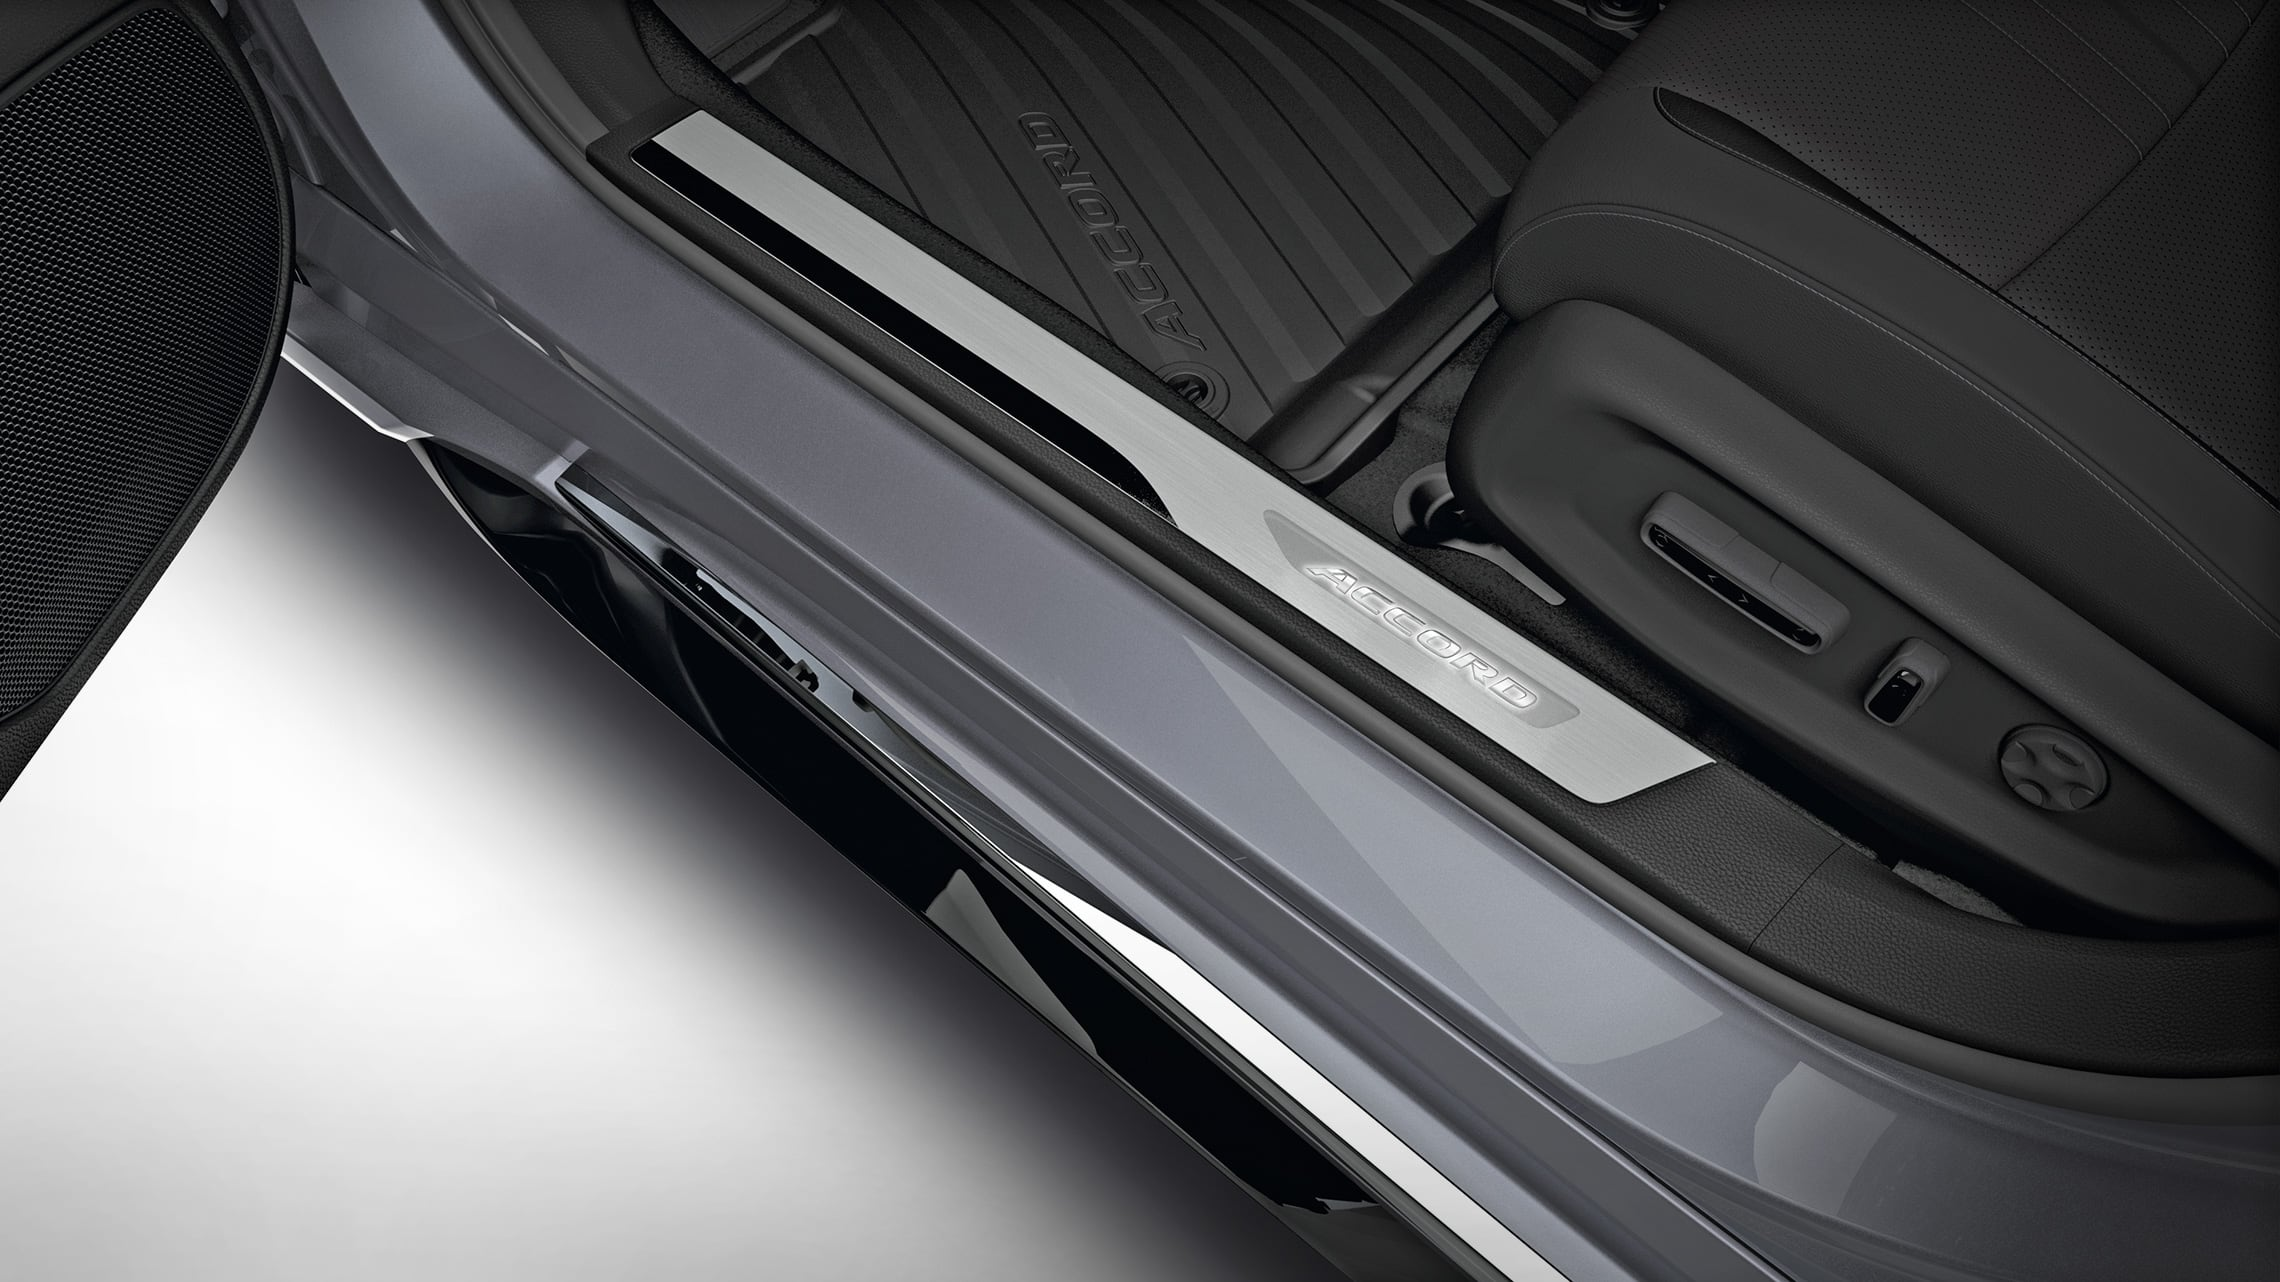 Illuminated door sill trim accessory detail in the 2020 Honda Accord.